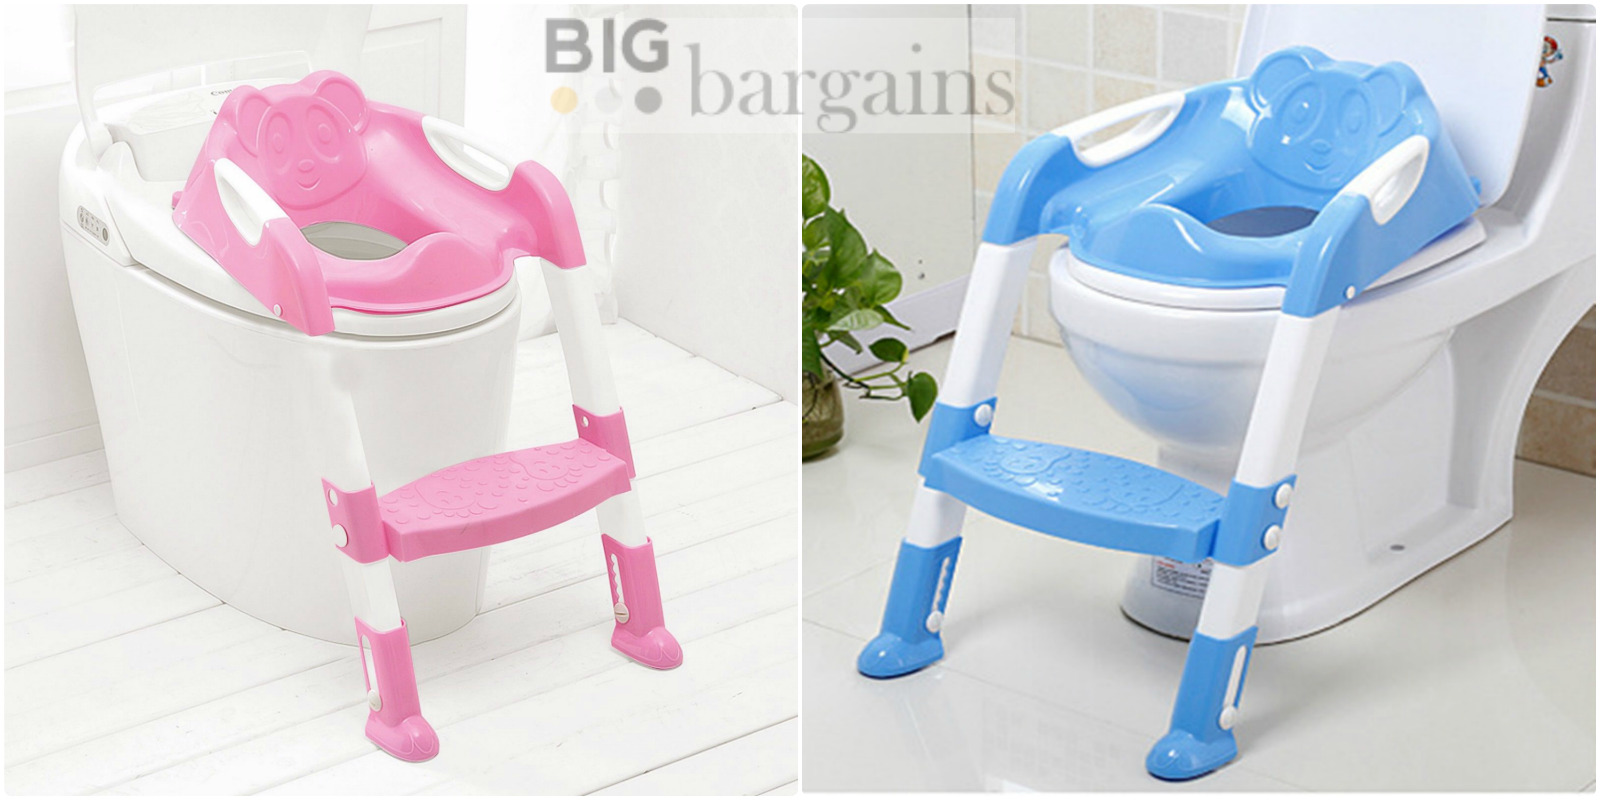 potty chairs for larger toddlers saucer moon chair childrens kids toddler toilet training ladder seat